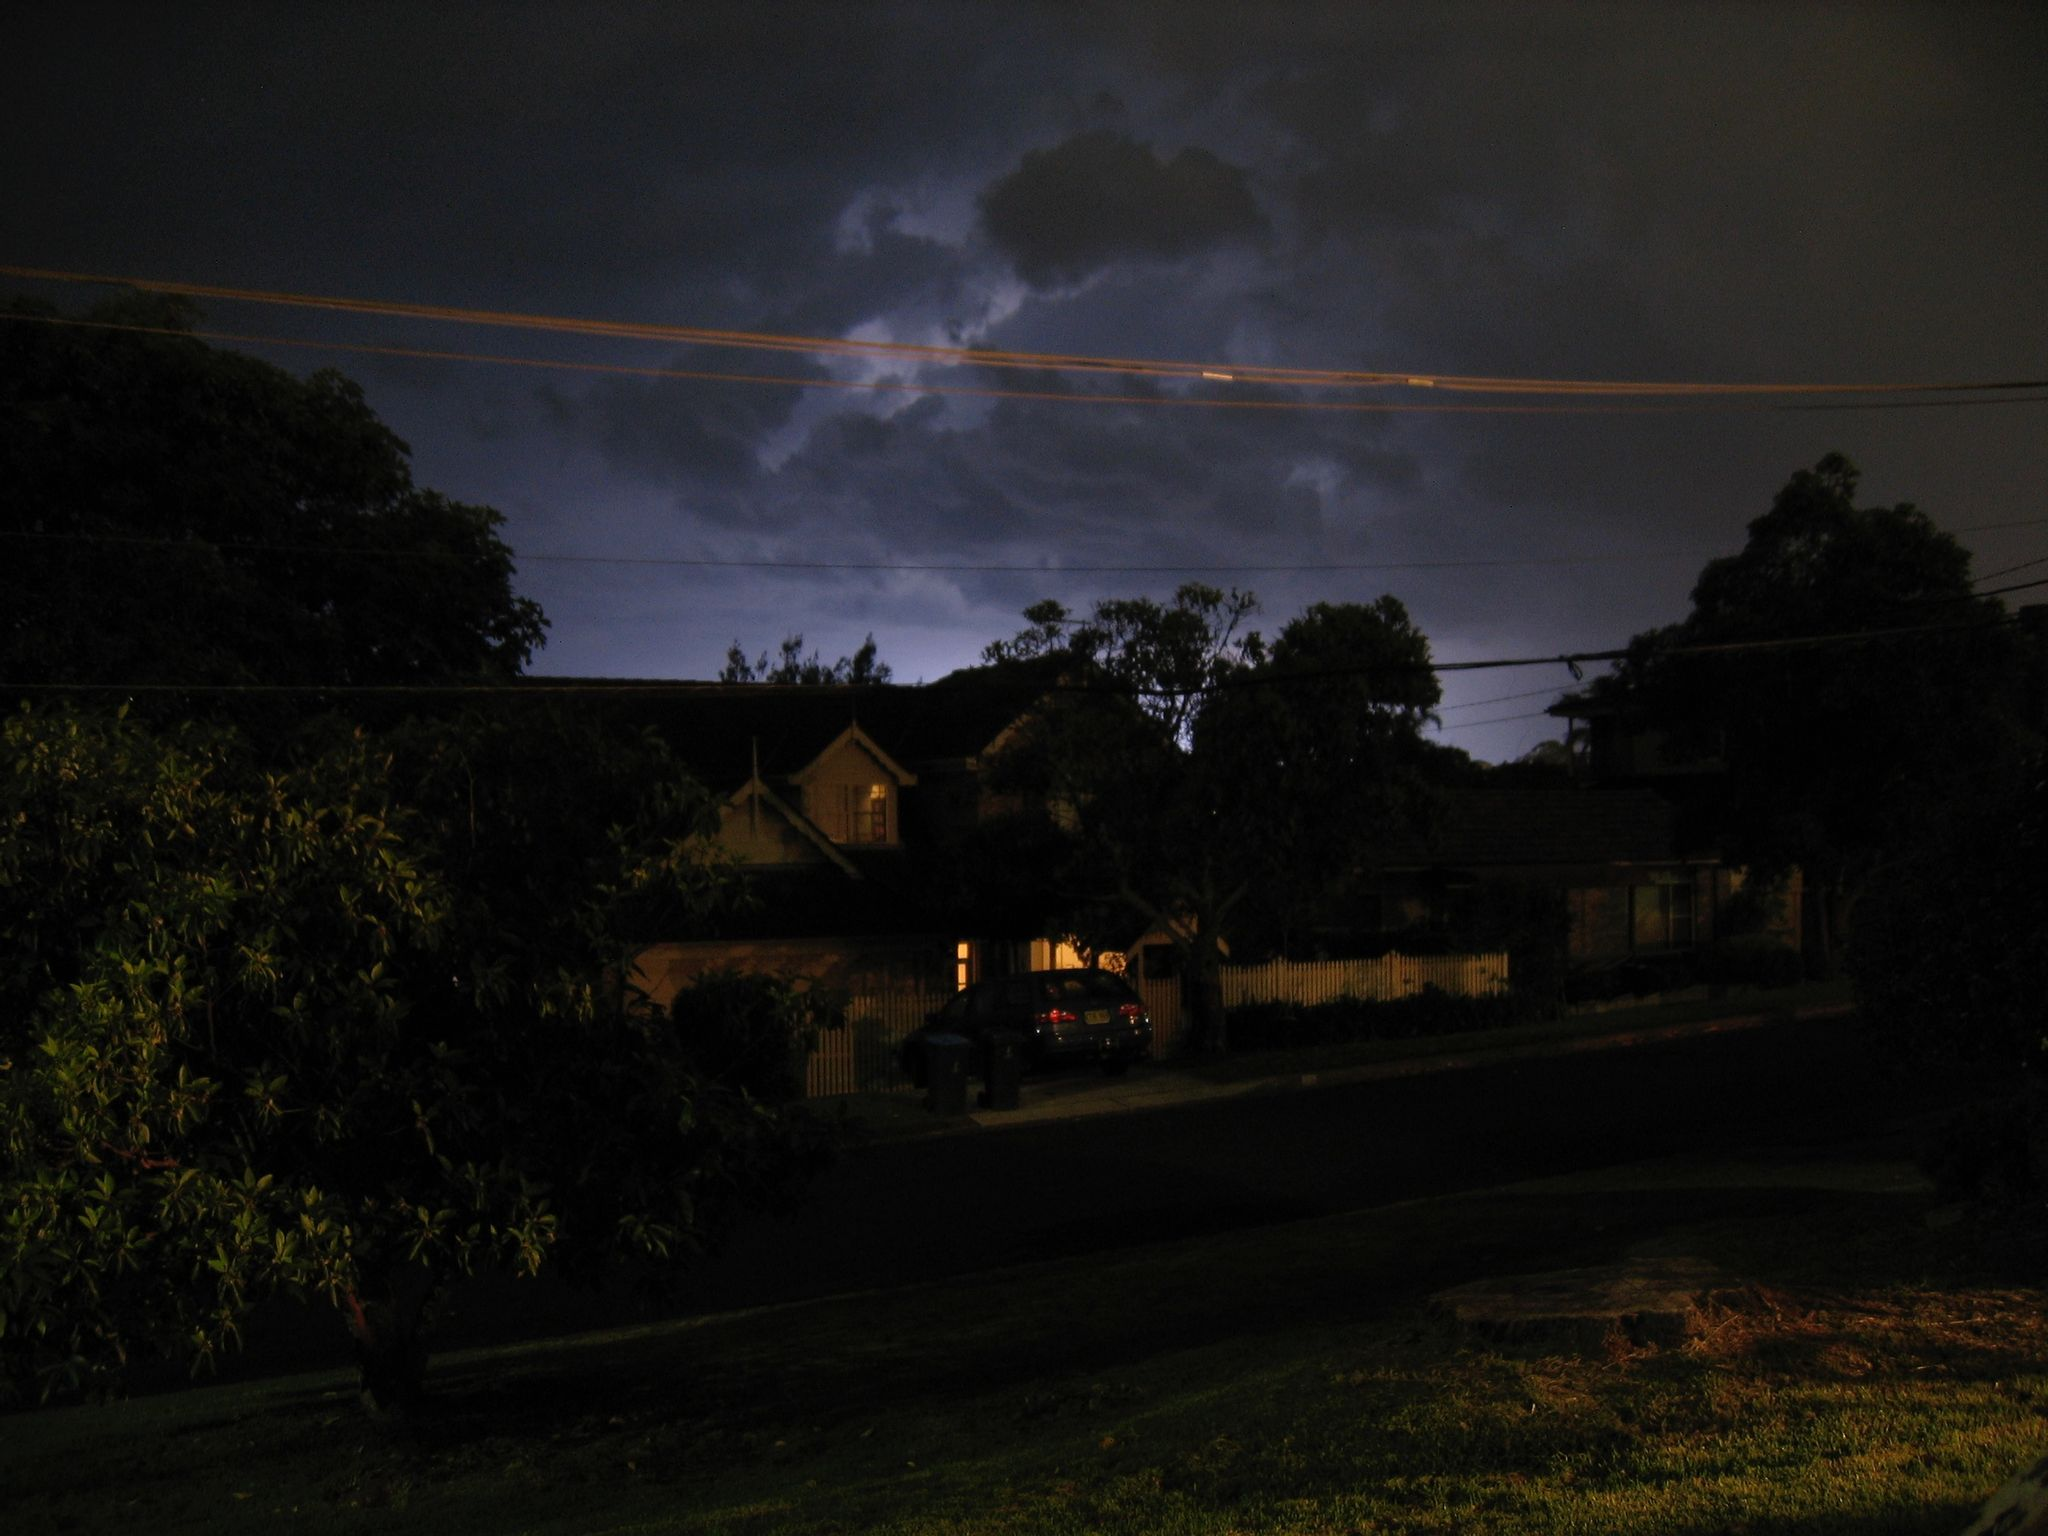 A long-exposure nighttime photo looking up over houses and trees at clouds that are being lit up from lightning strikes.